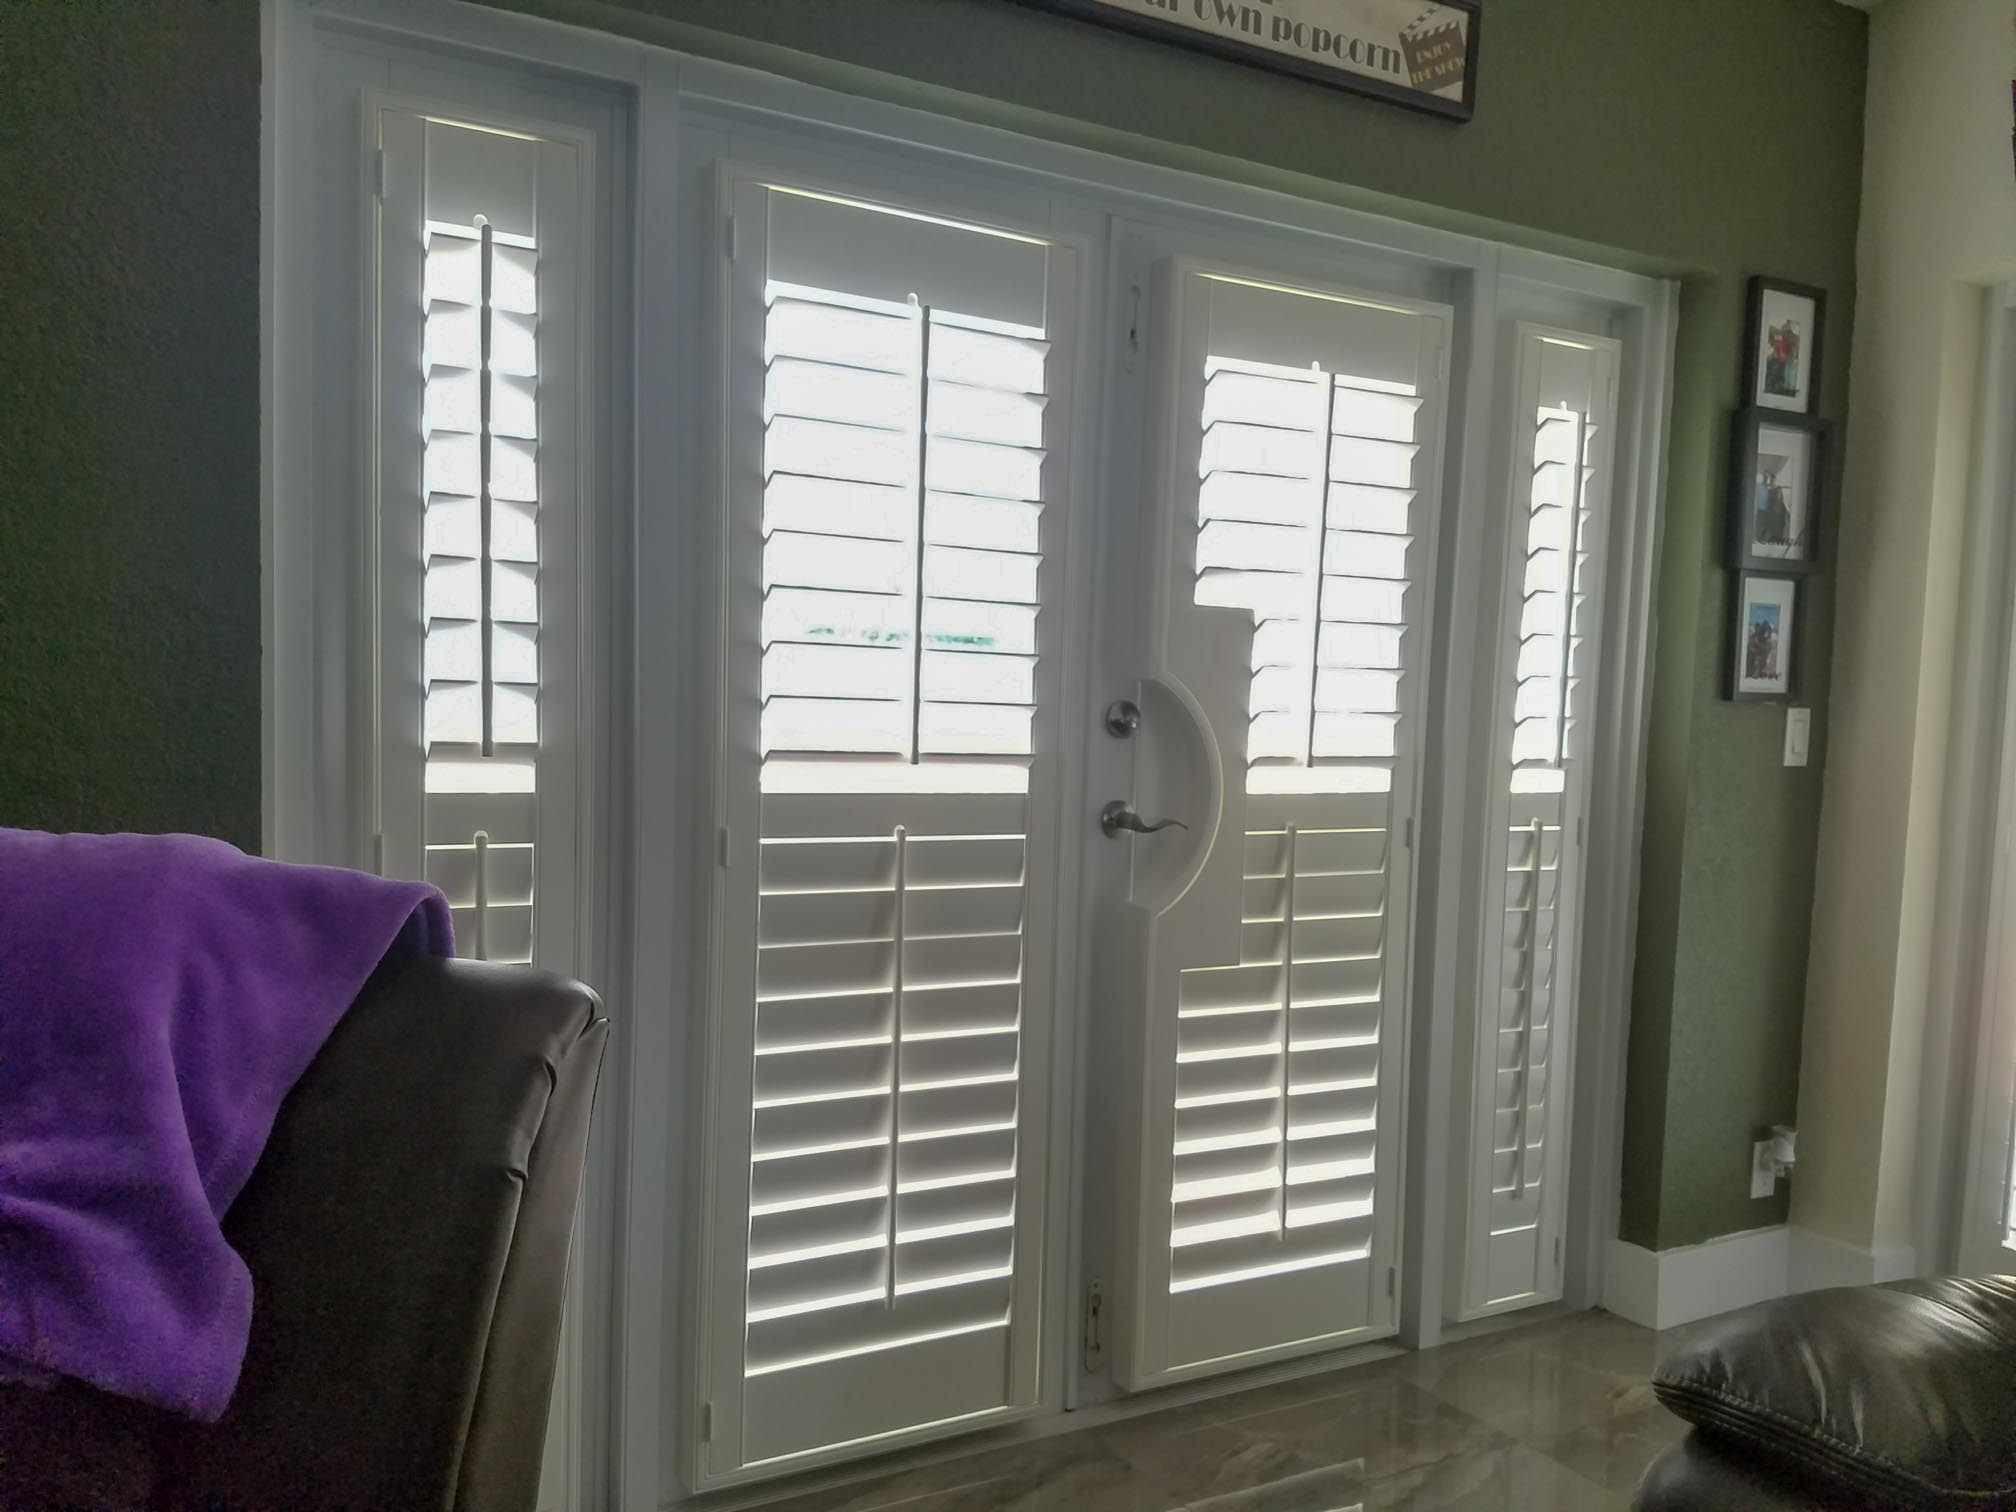 plantation shutters gallery PLANTATION SHUTTERS GALLERY 20171013 140744